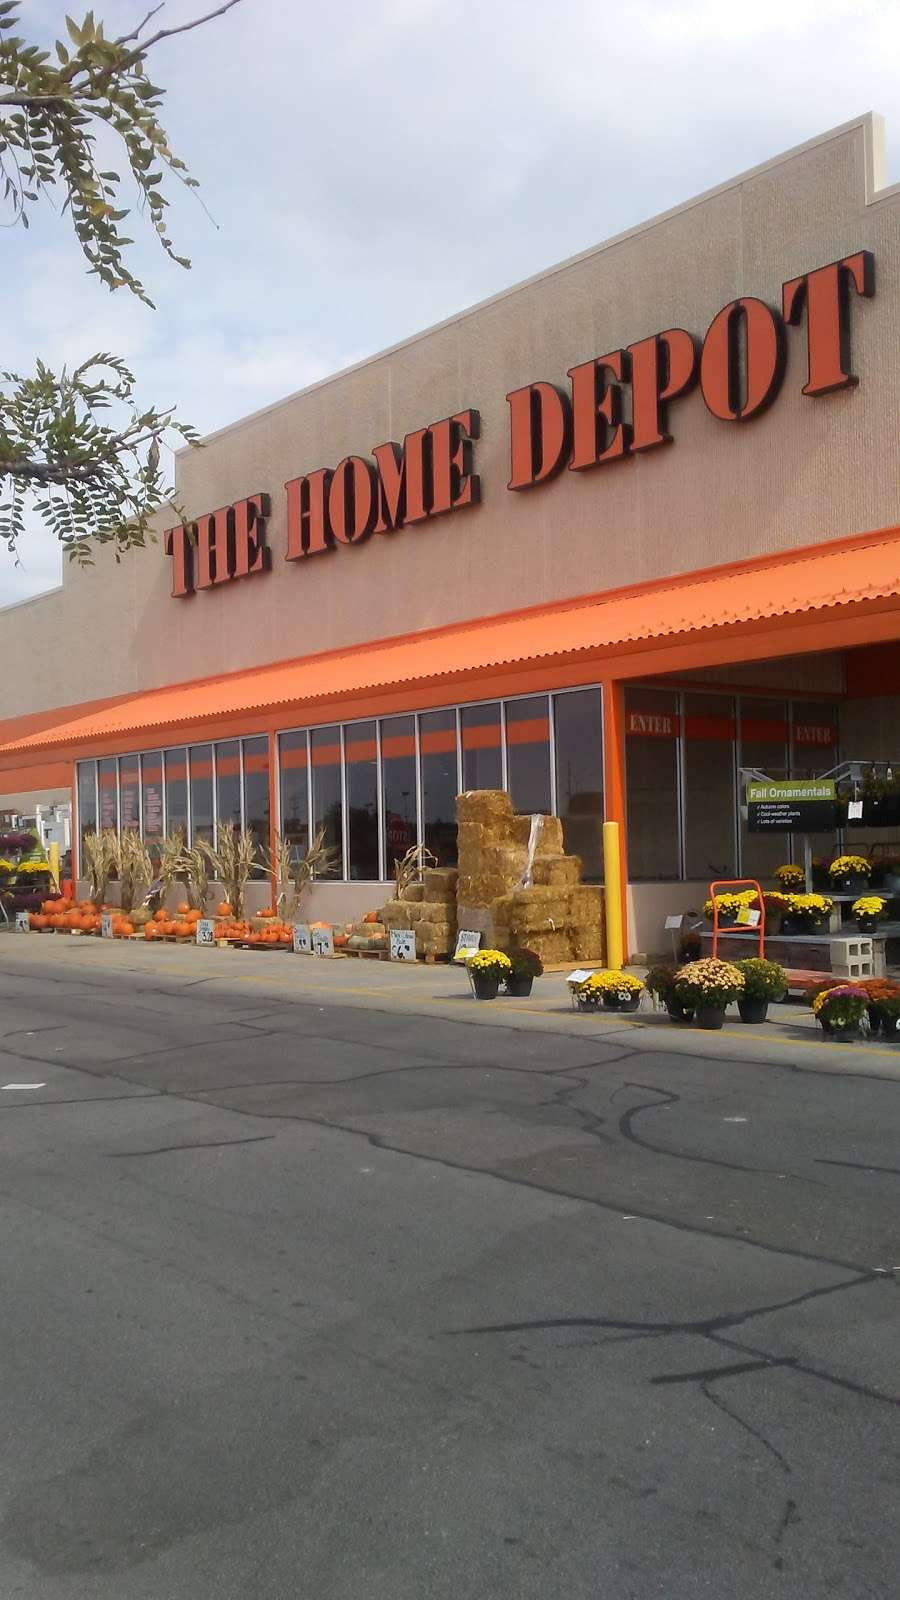 The Home Depot 17845 Halsted St Homewood Il 60430 Usa